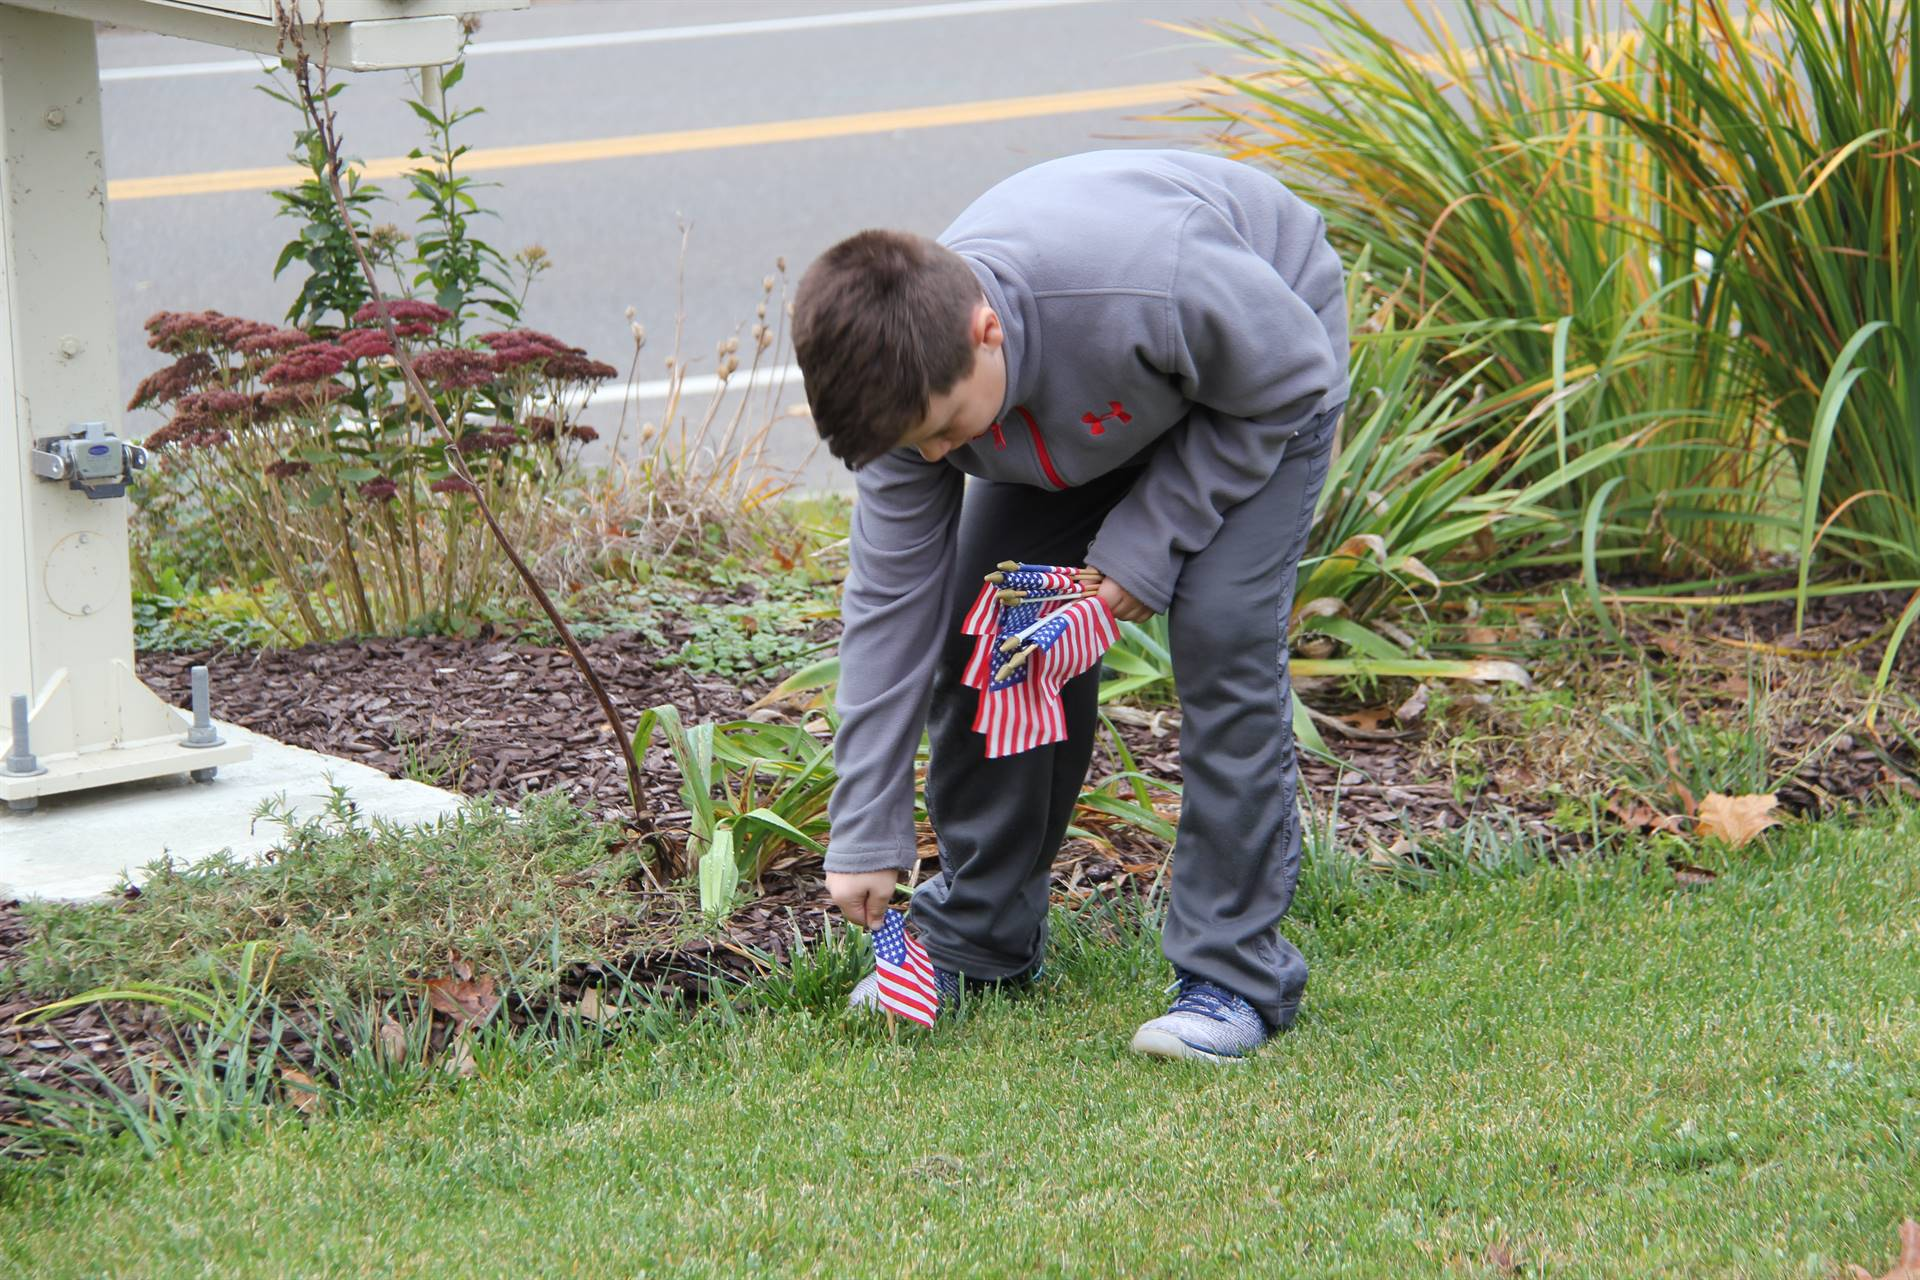 boy planting flag in grass